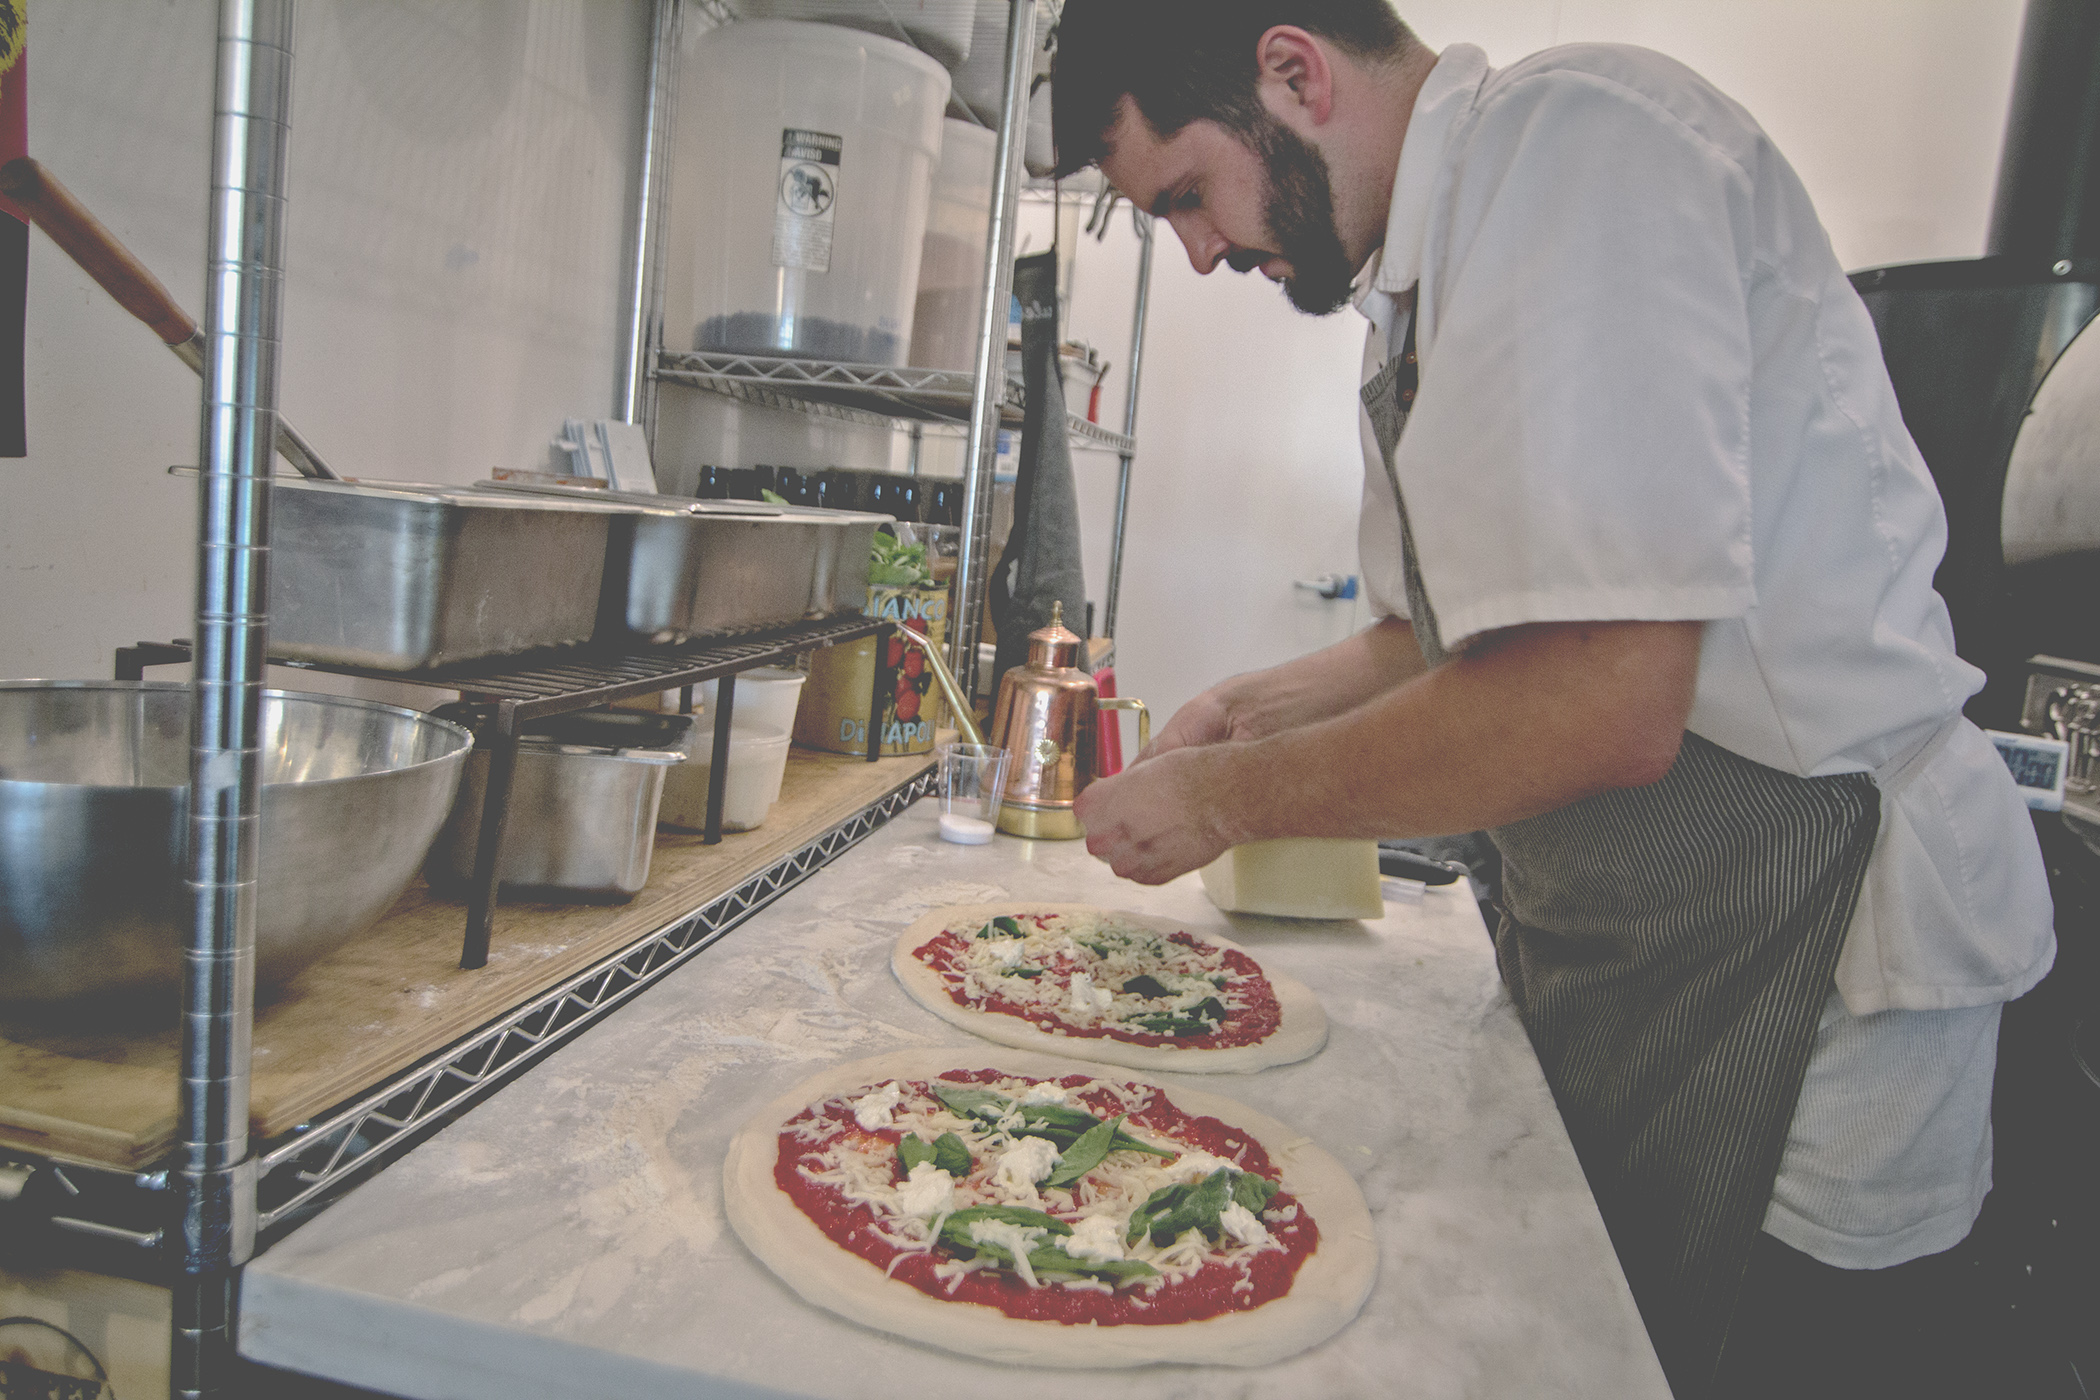 Hand tossed, hand crafted pizzas by Tribute Pizza. Photo by Jared Armijo-Wardle.